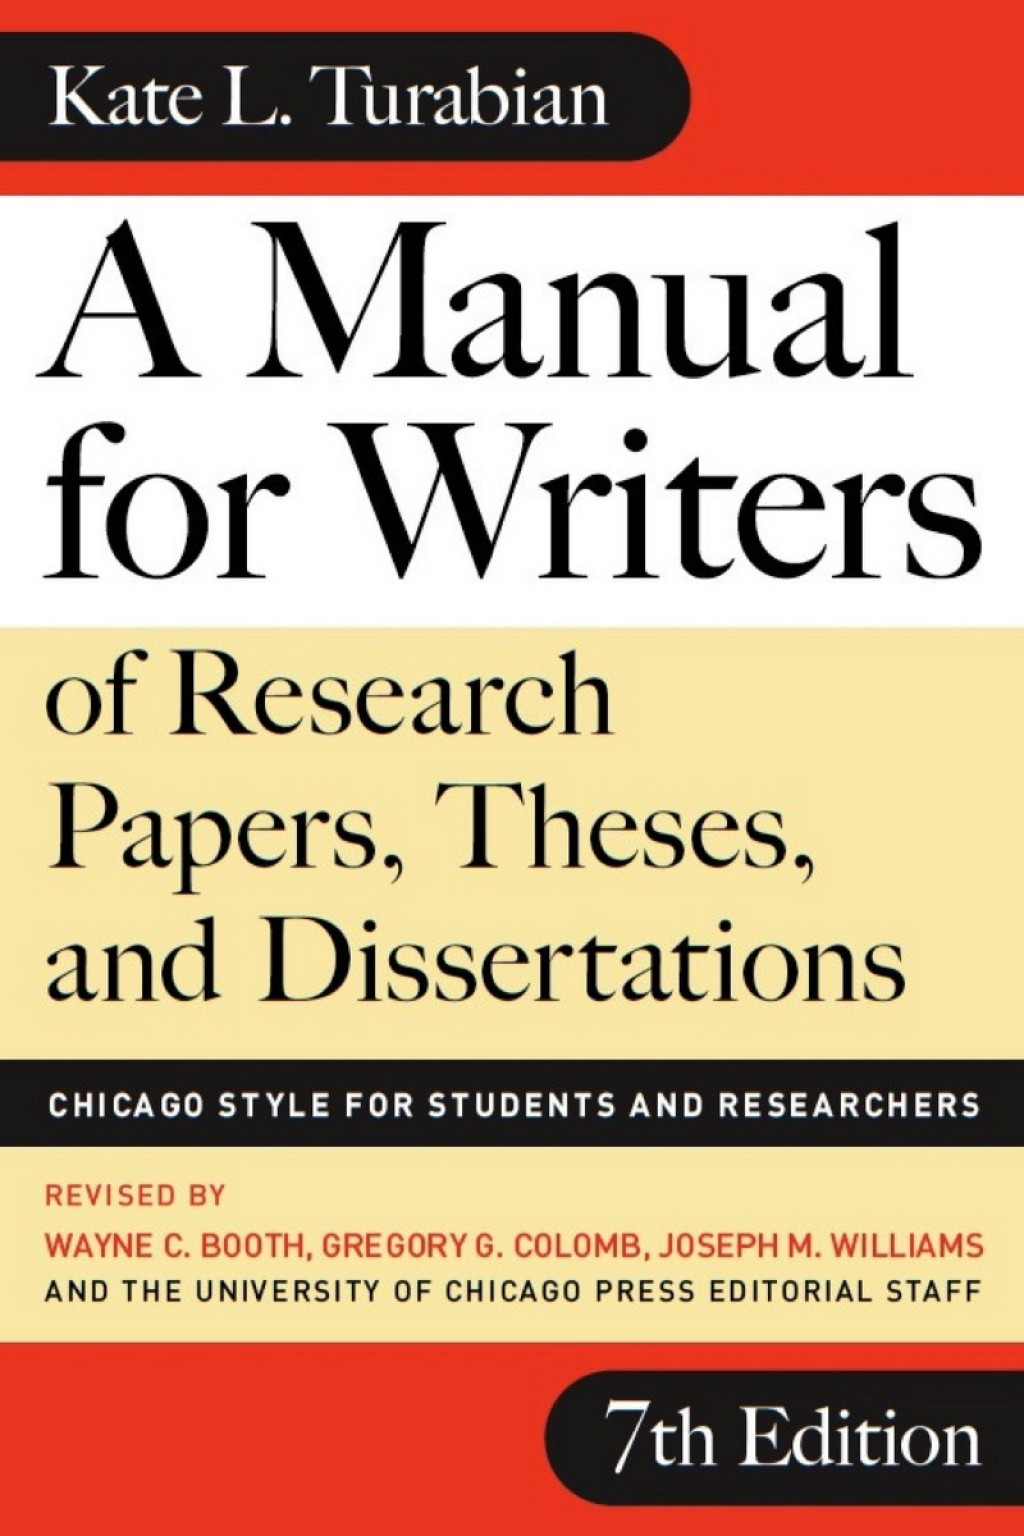 002 Research Paper Frontcover Manual For Writers Of Papers Theses And Dissertations 7th Sensational A Edition Large